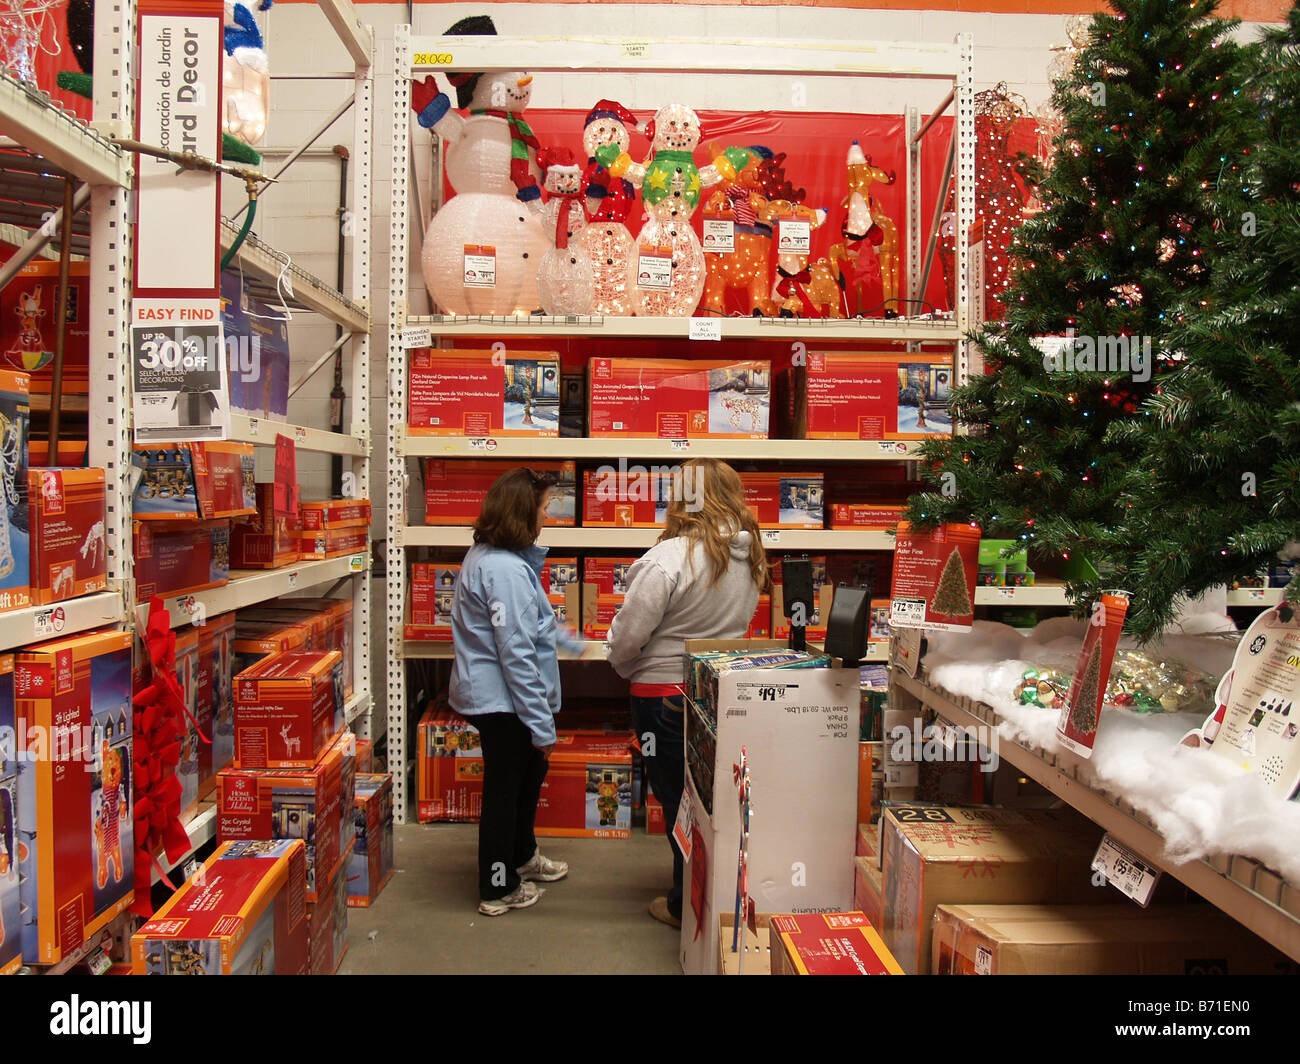 Amazing Shoppers Looking For Christmas Decorations At A Home Depot Store In New  York, USA